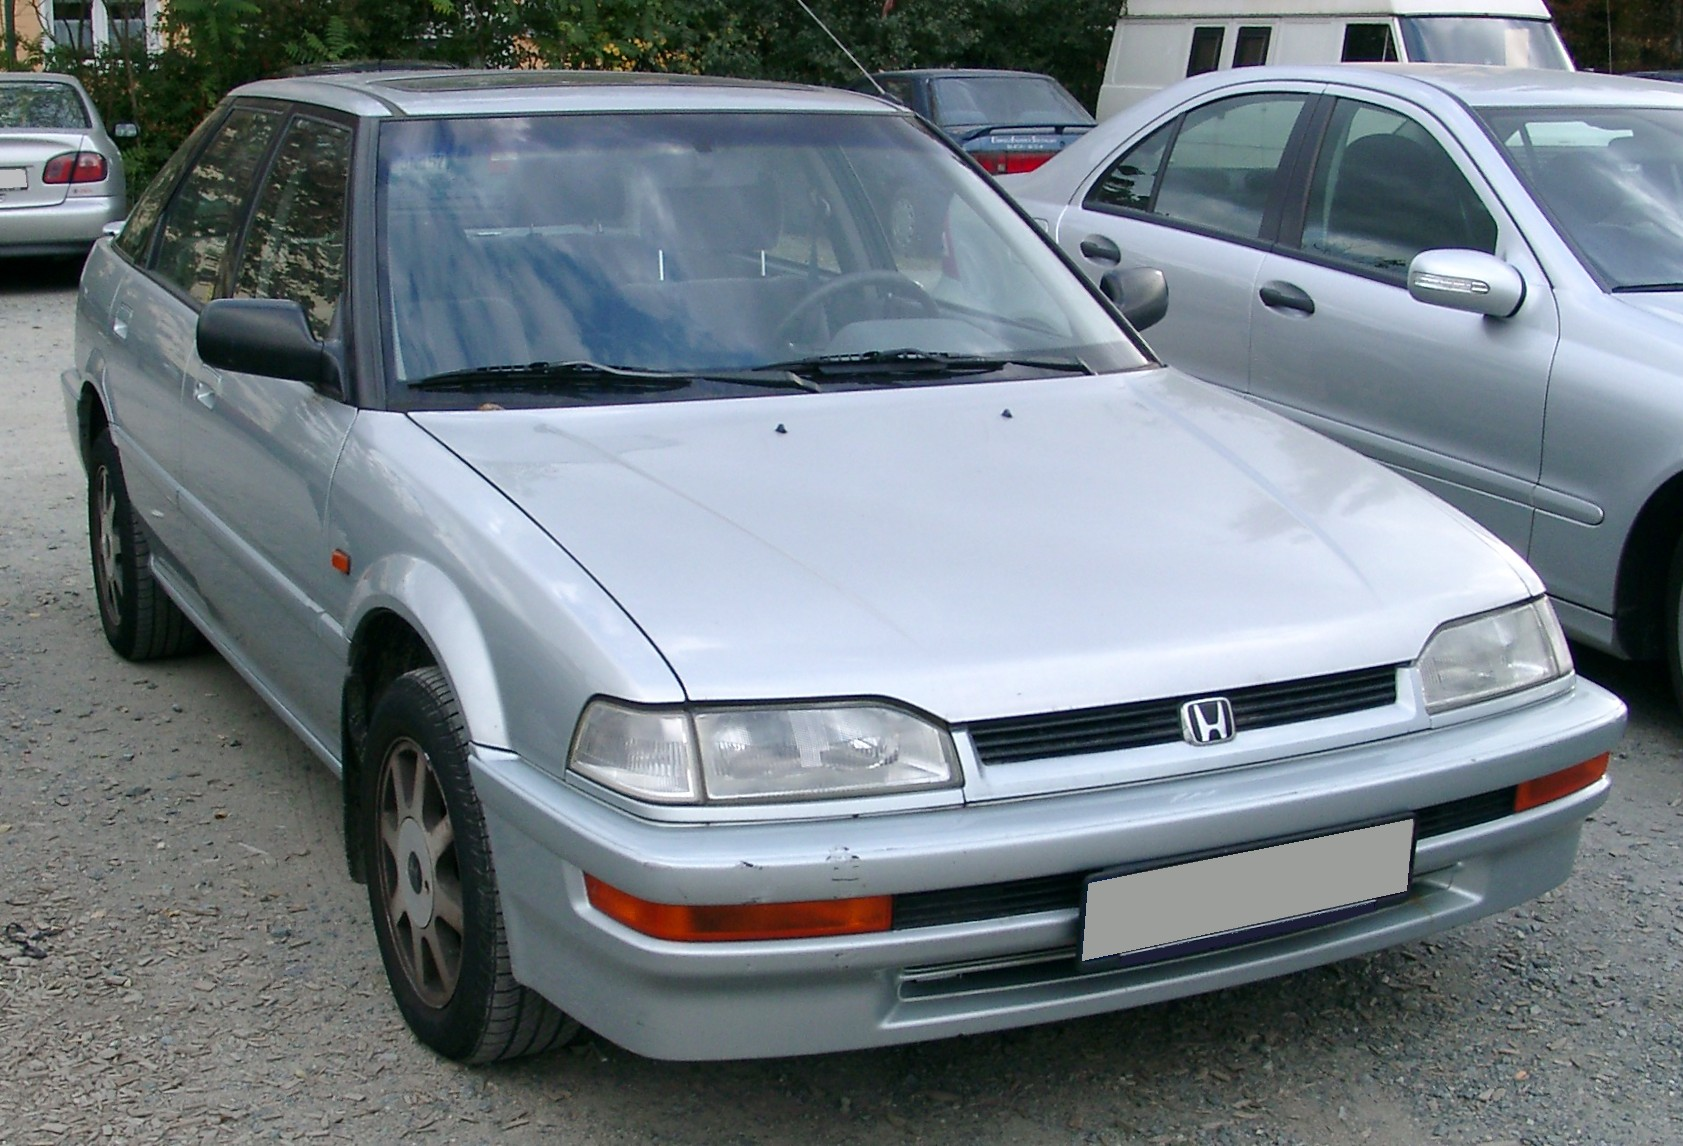 Honda Concerto   pictures, information and specs - Auto-Database.com